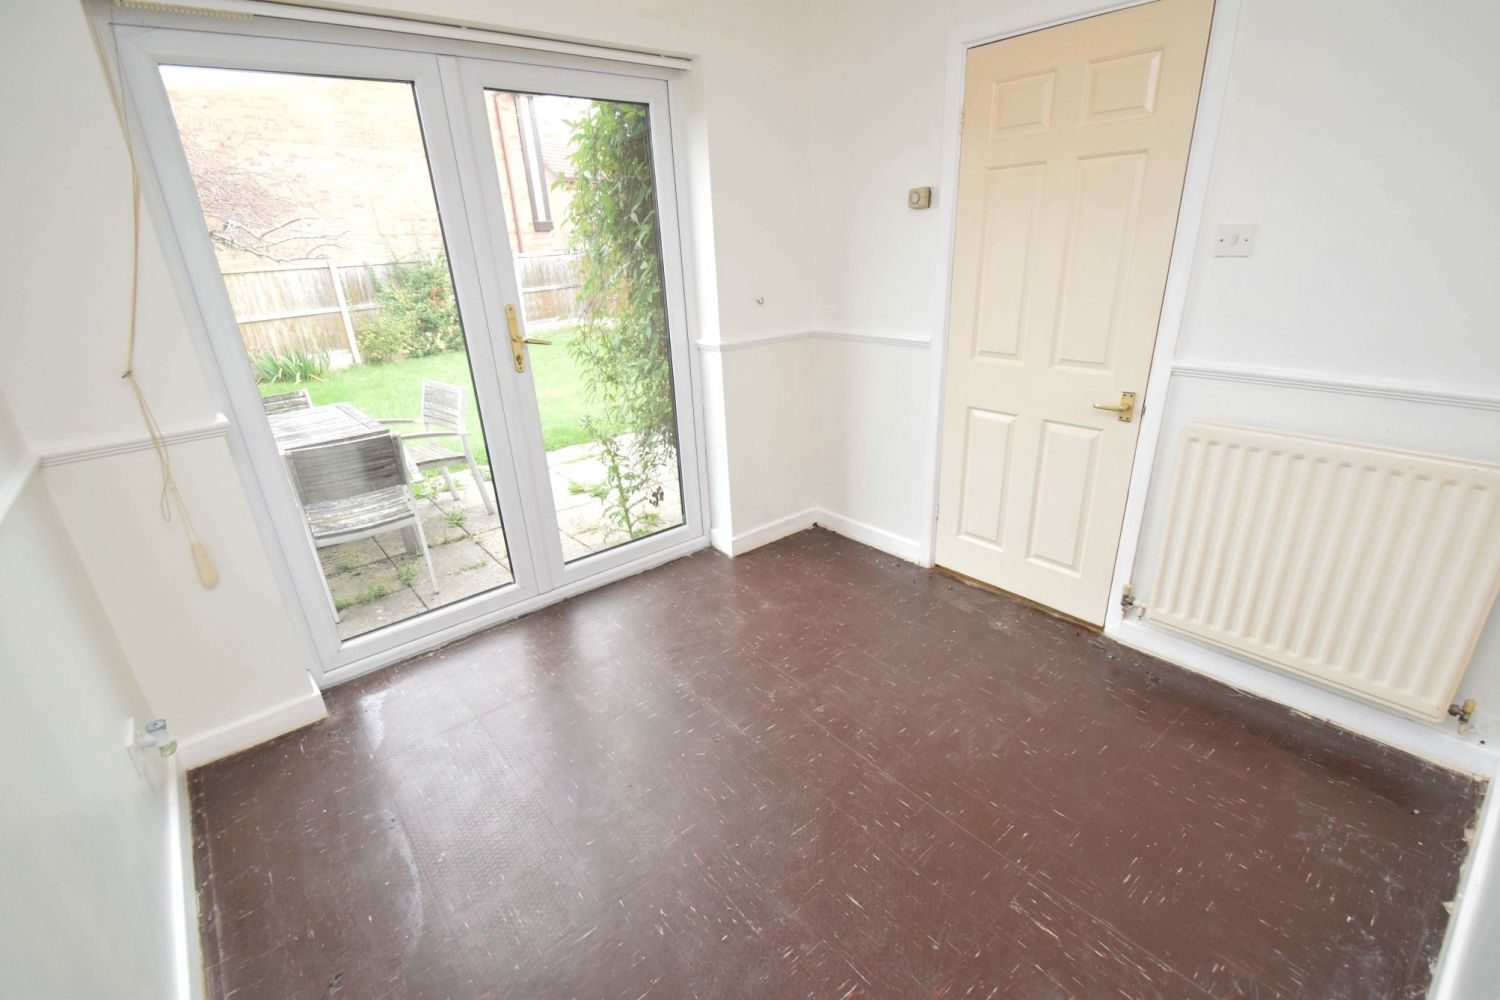 3 bed detached for sale in Avon Close, Stoke Heath, Bromsgrove, B60  - Property Image 4